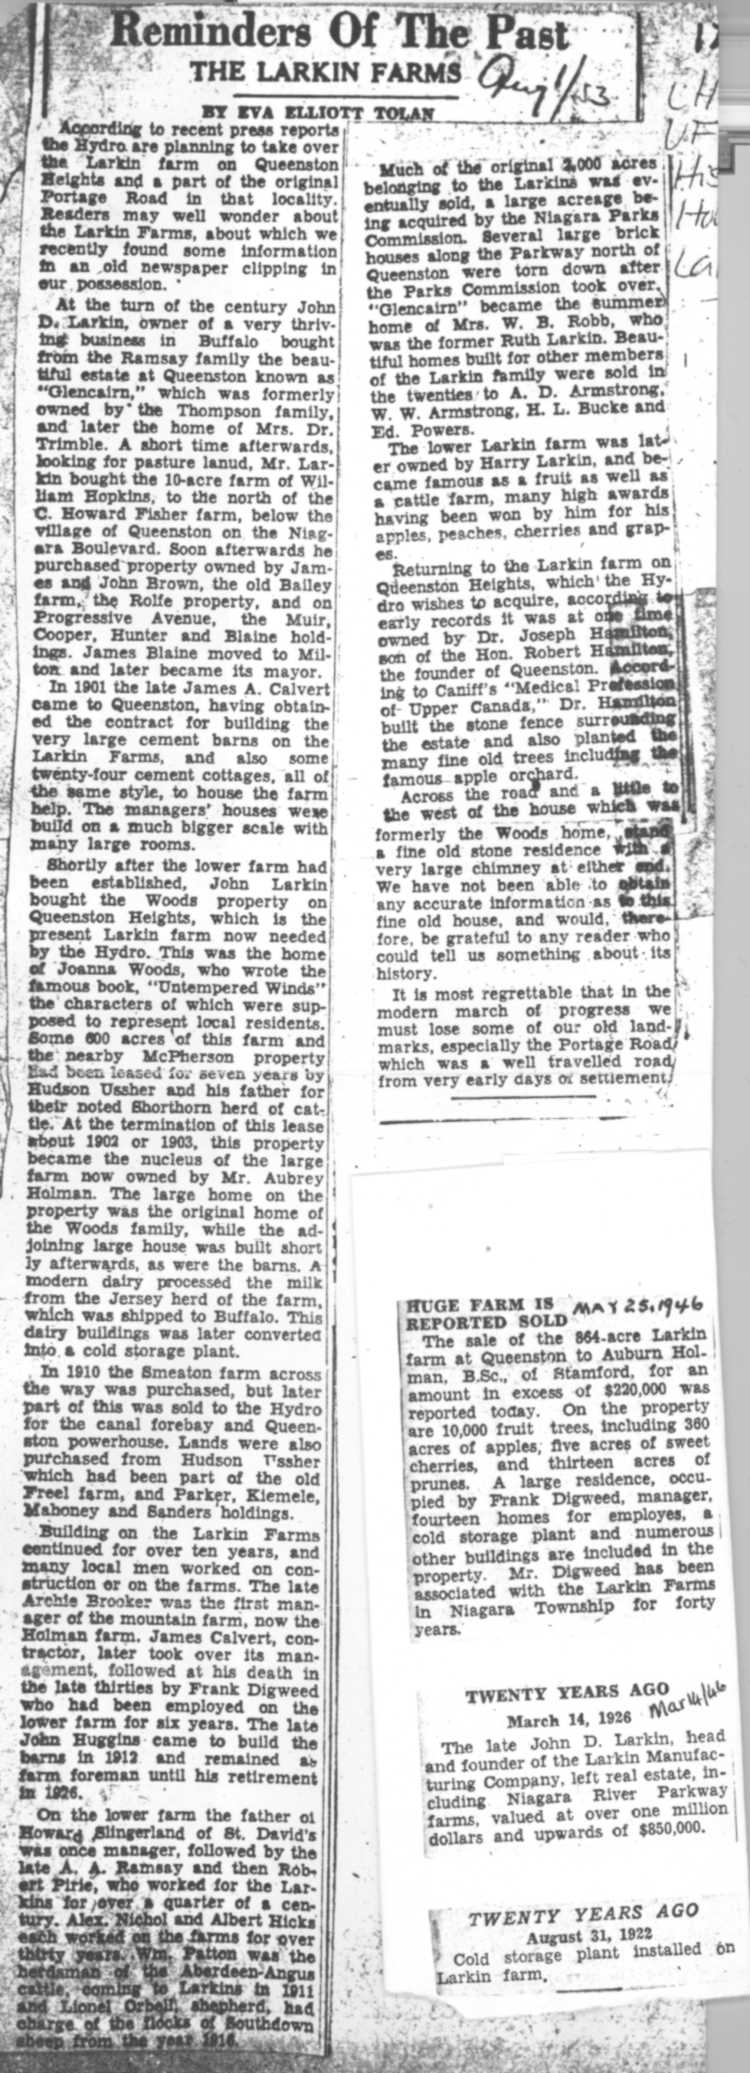 Reminders of the Past - newspaper clipping relating to sale of Larkin farm in Queenston Heights (image/jpeg)